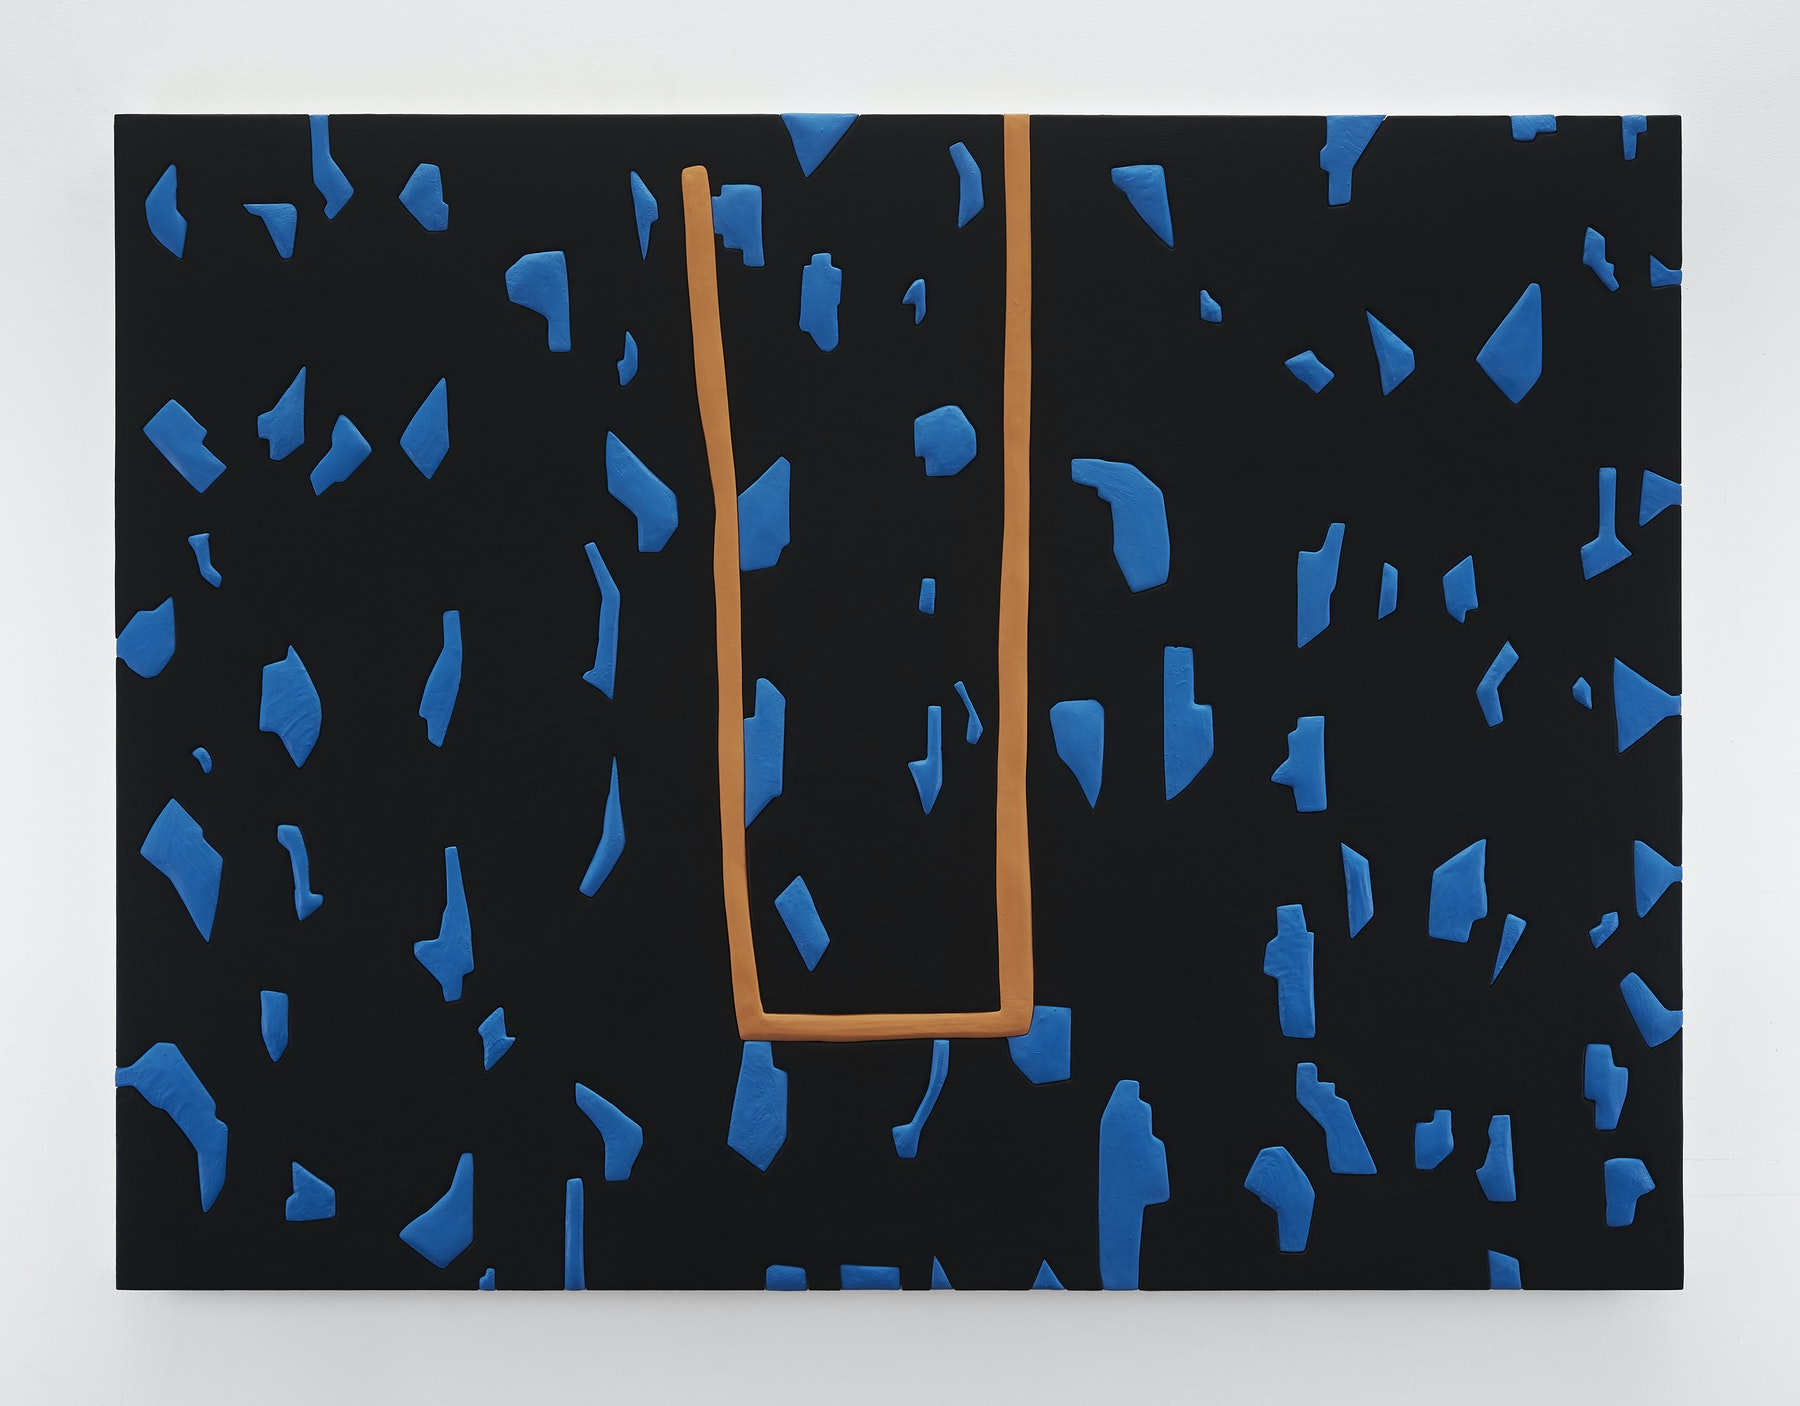 """Sadie Benning """"Untitled 9,"""" 2019 Wood, aqua resin, casein, and acrylic gouache 53 x 71"""" [HxW] (134.62 x 180.34 cm) Inventory #BEN863 Courtesy of the artist and Vielmetter Los Angeles Photocredit: Chris Austin"""